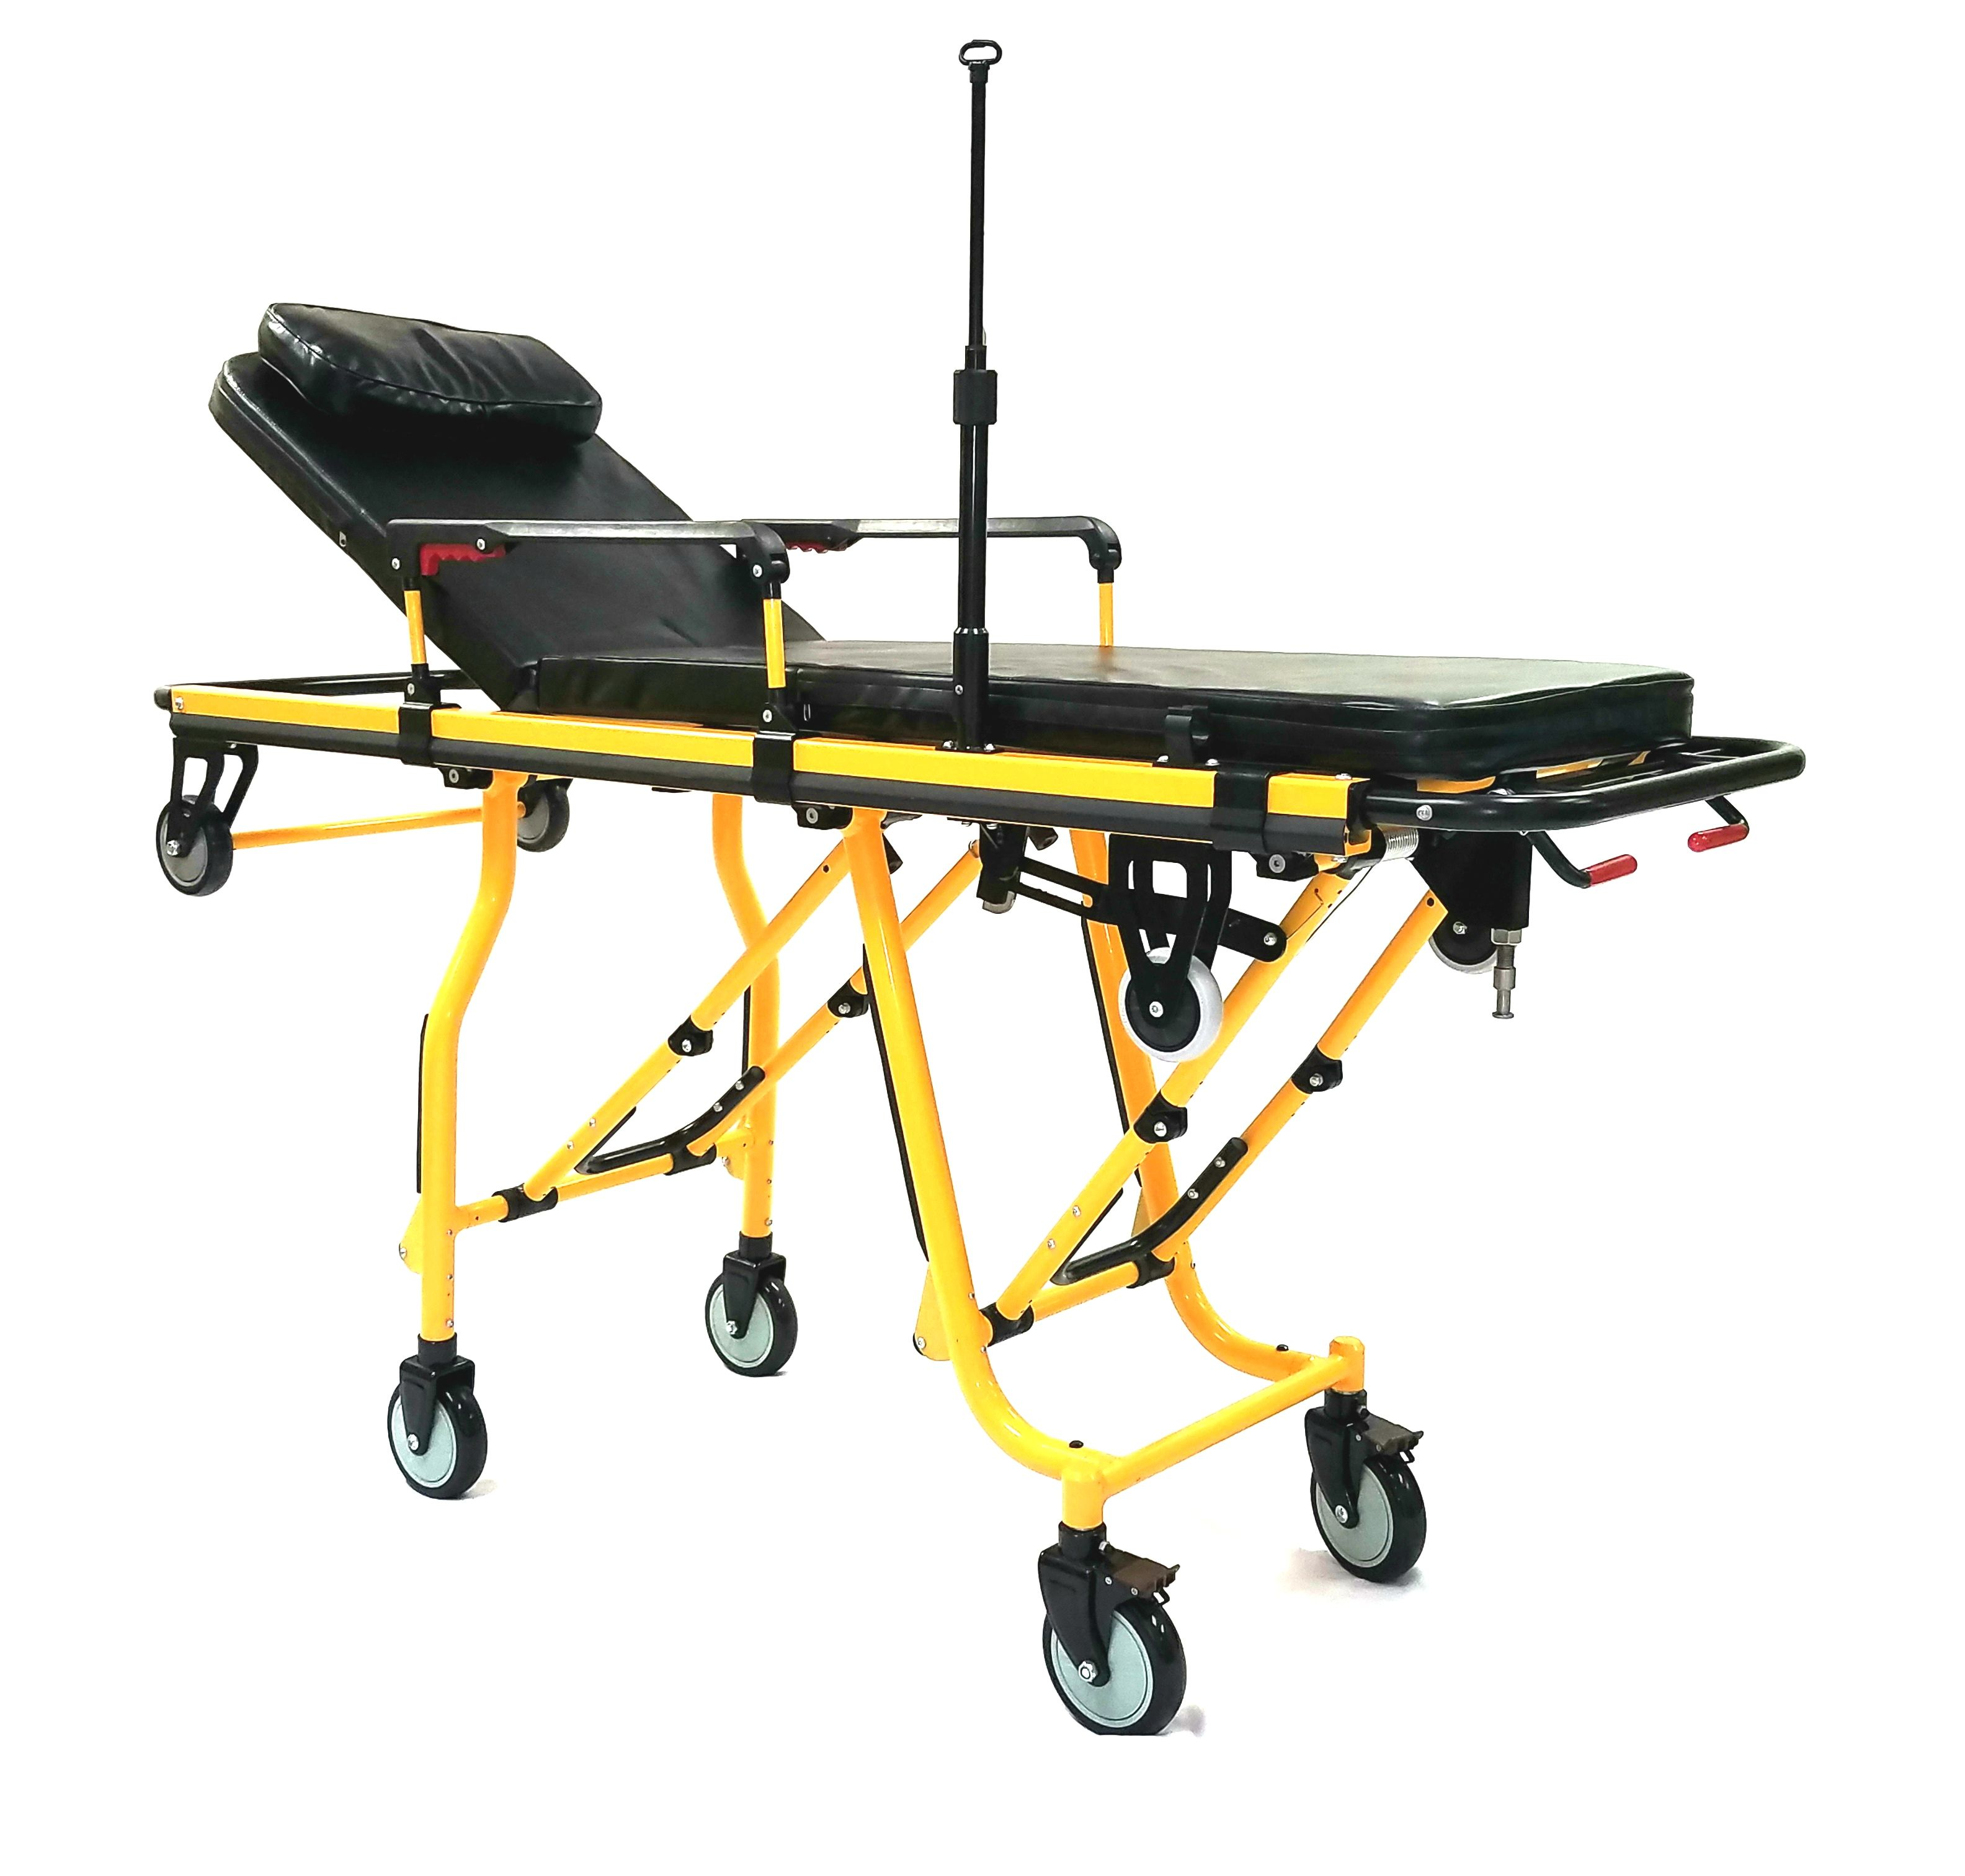 stryker stair chair manual mounted keyboard tray ambulance stretcher related keywords